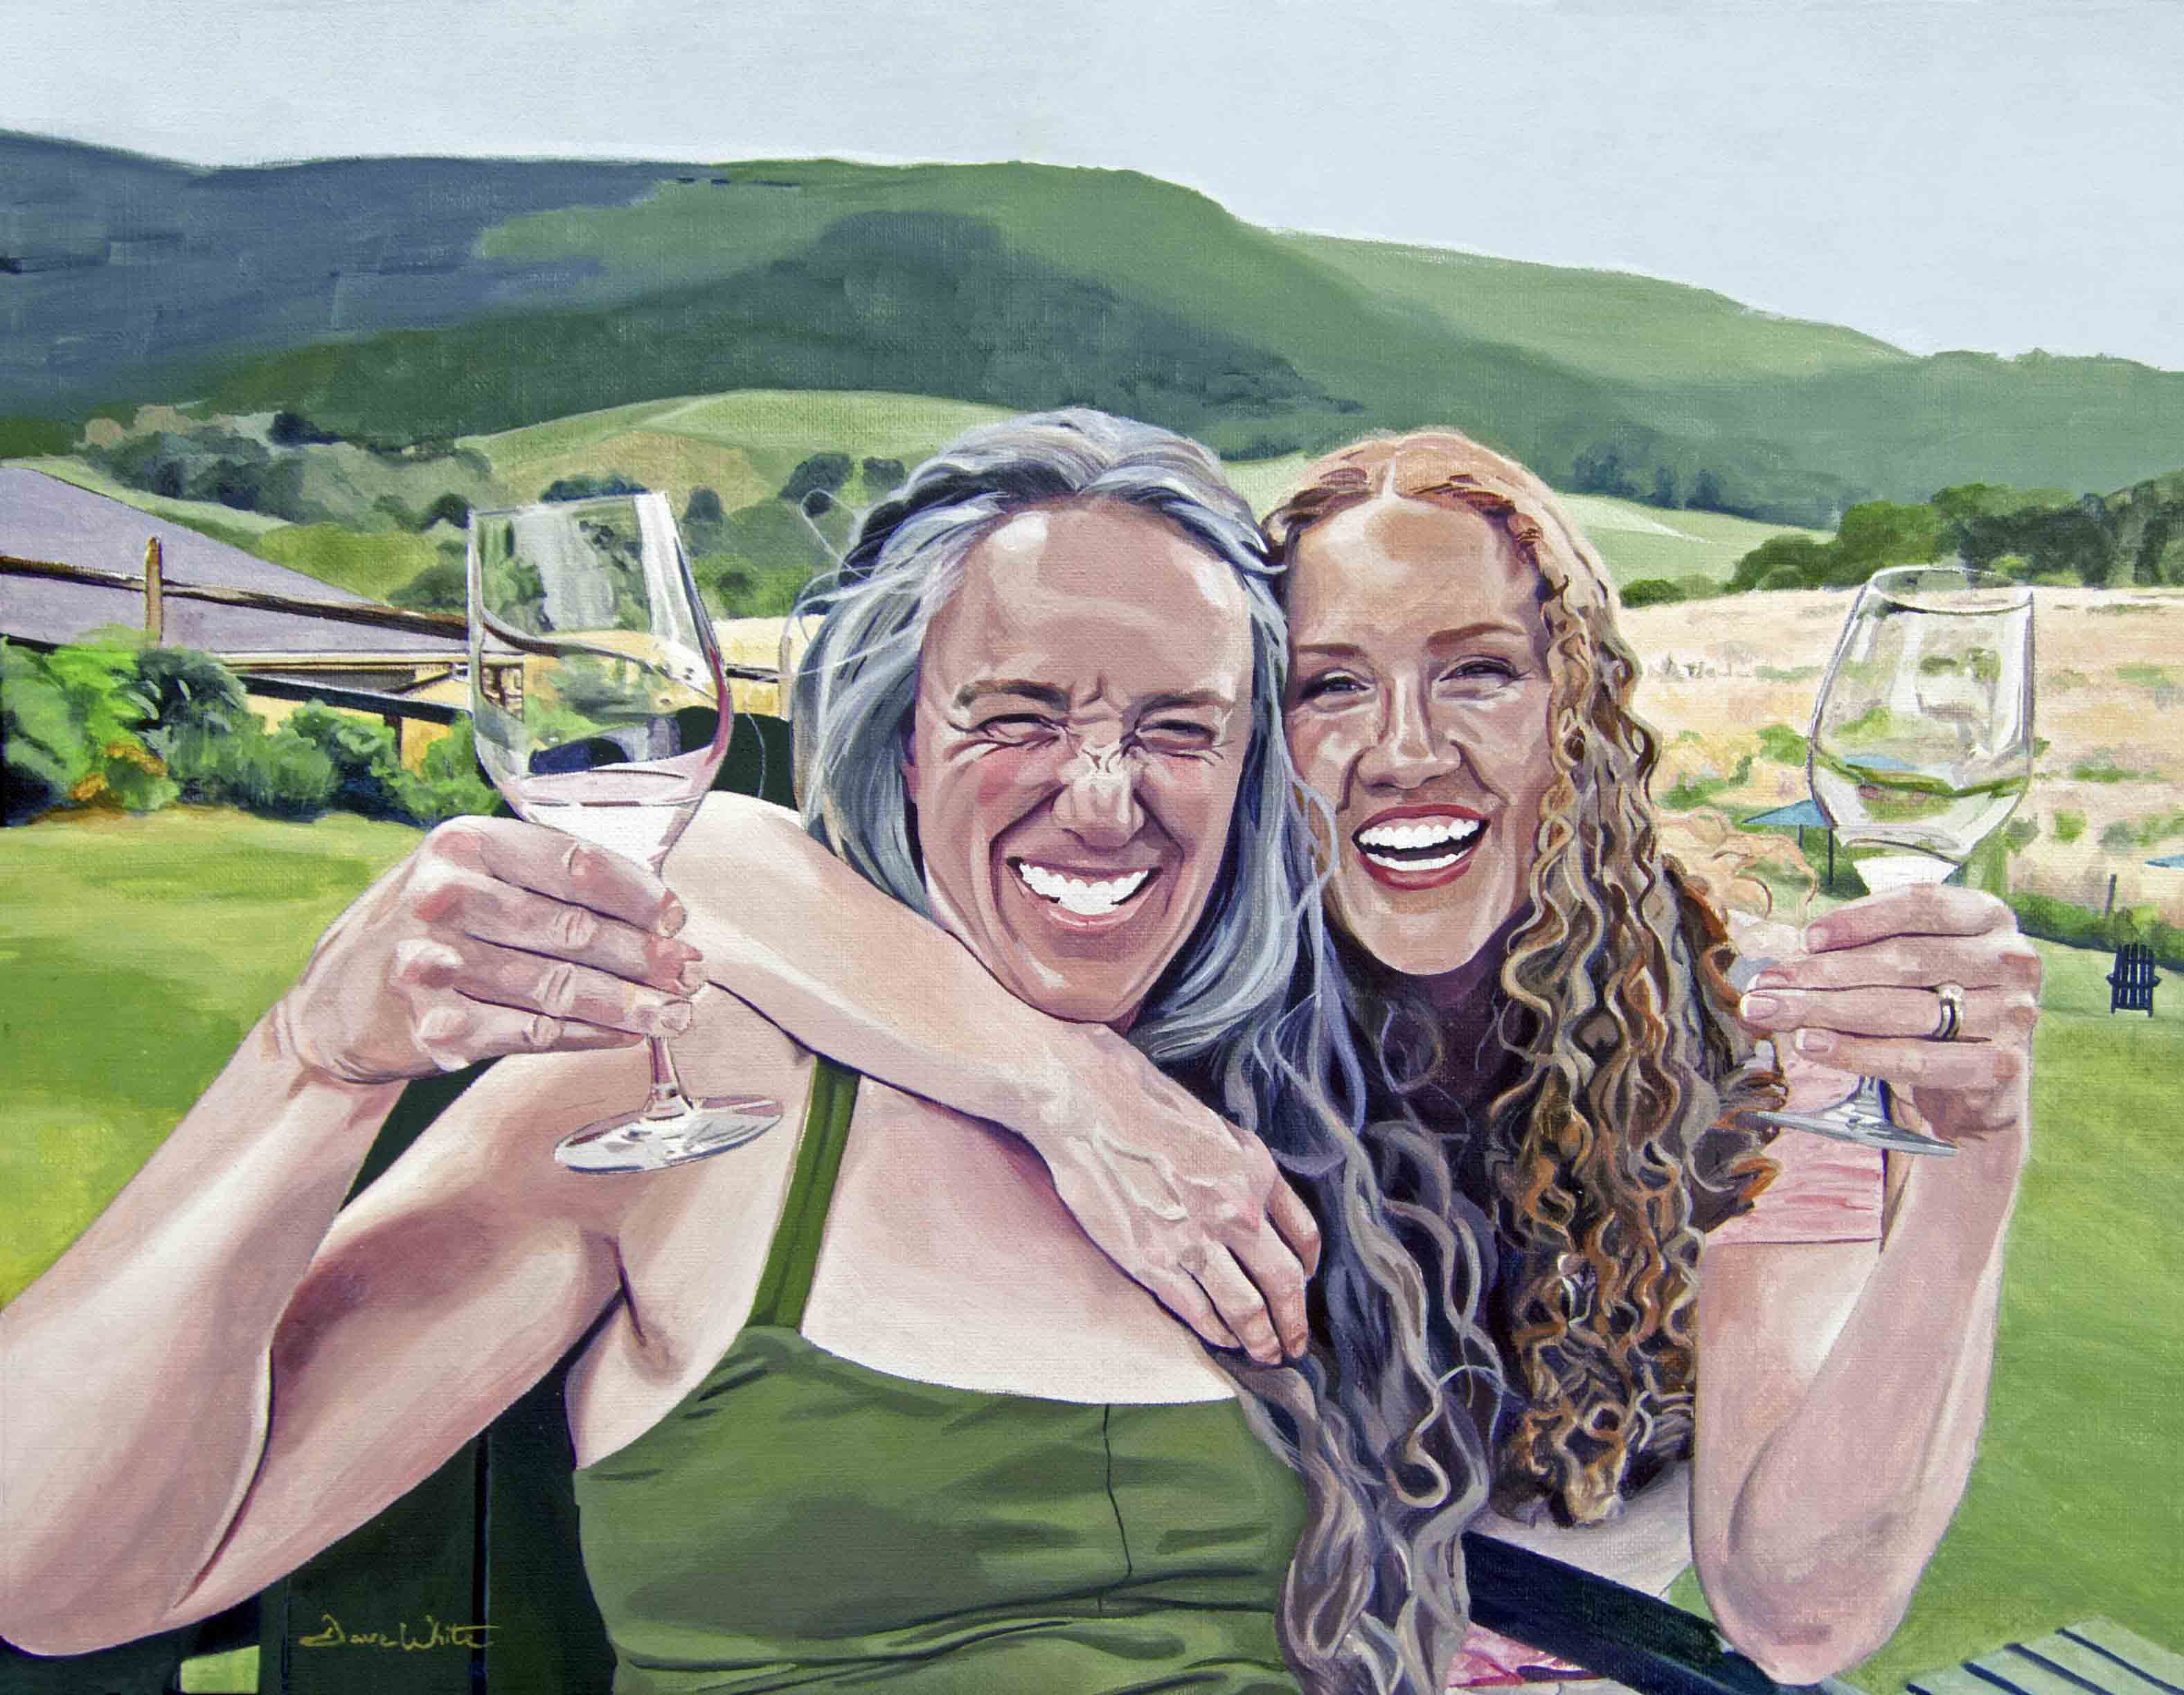 portrait artist virginia, portrait artist ashburn, portrait artist loudoun, portrait artist northern virginia, portrait painter ashburn, portrait painter loudoun, portrait painter northern virginia, portrait painter washington dc